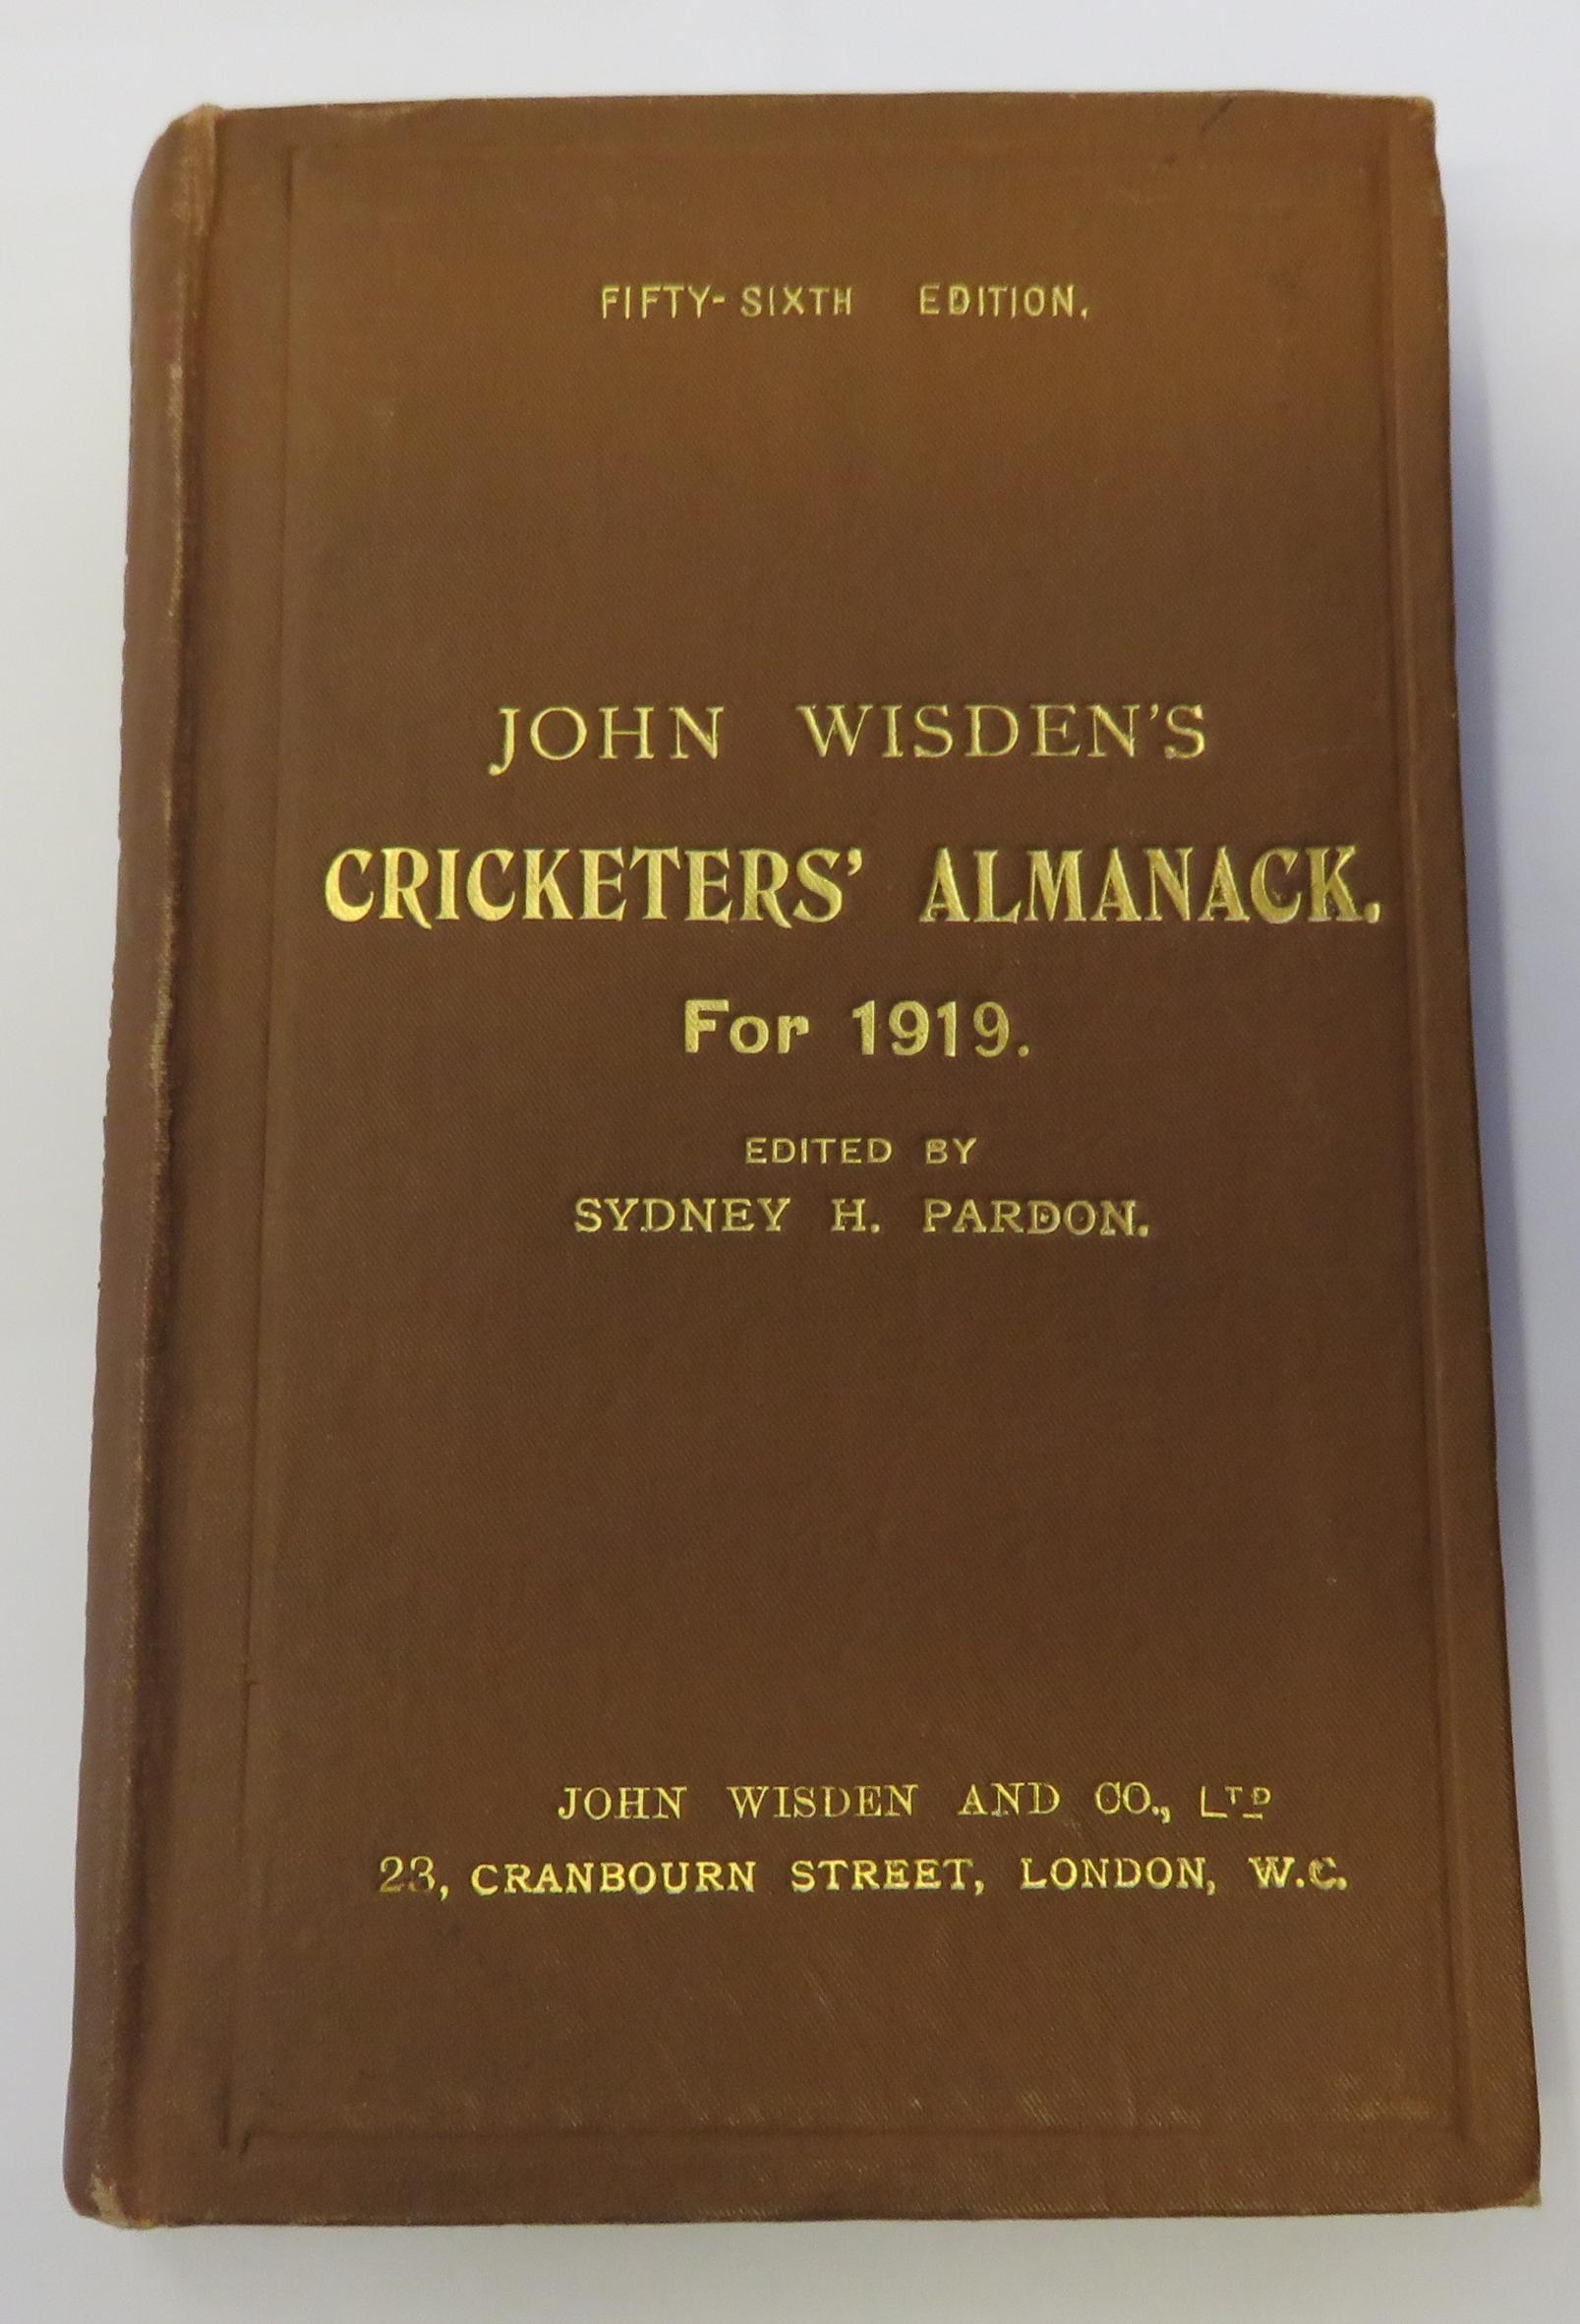 John Wisden's Cricketers' Almanack for 1919